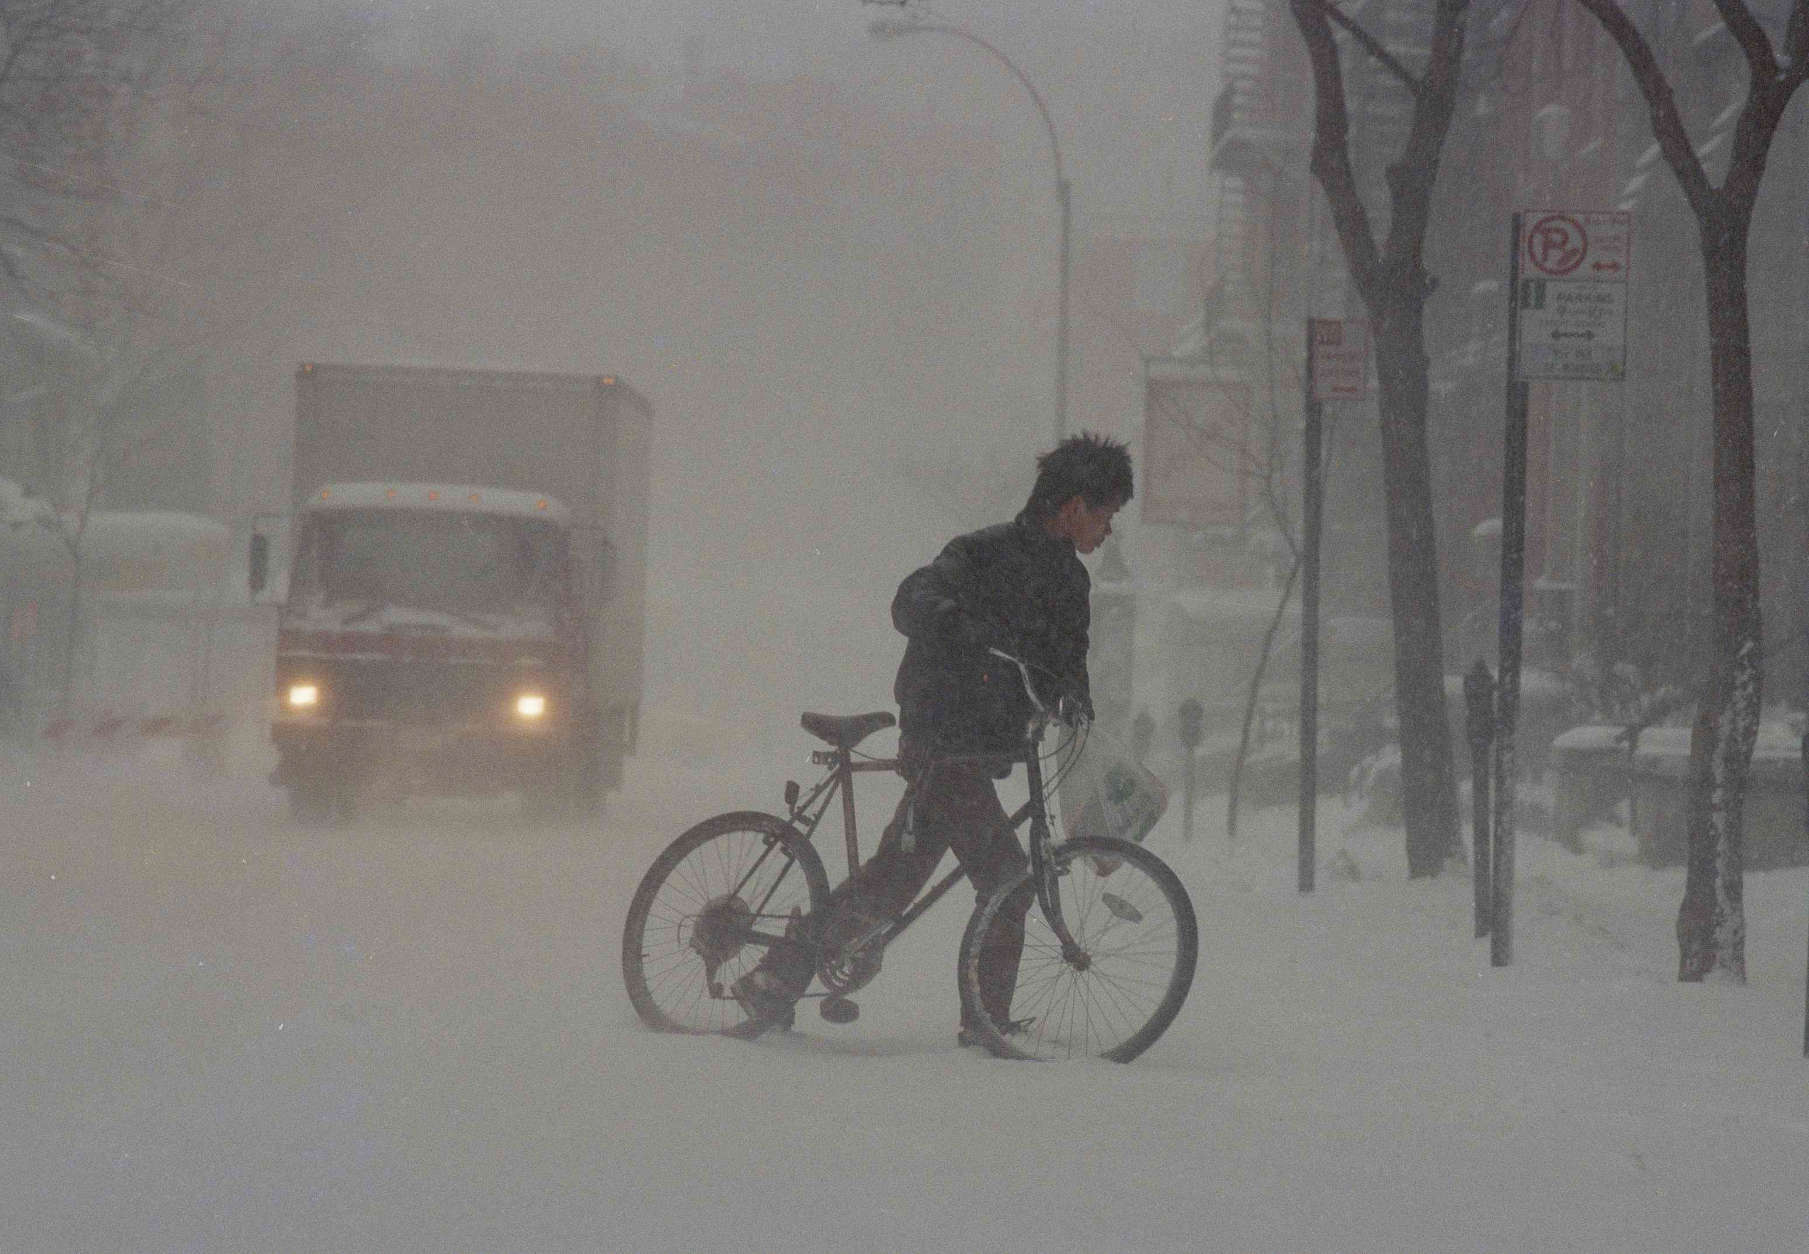 A cyclist makes his way across a New York street  March 13, 1993. The storm that dumped 13.9 inches of snow at Dulles International Airport enveloped the eastern third of the country. (AP Photo/Robert Clark)